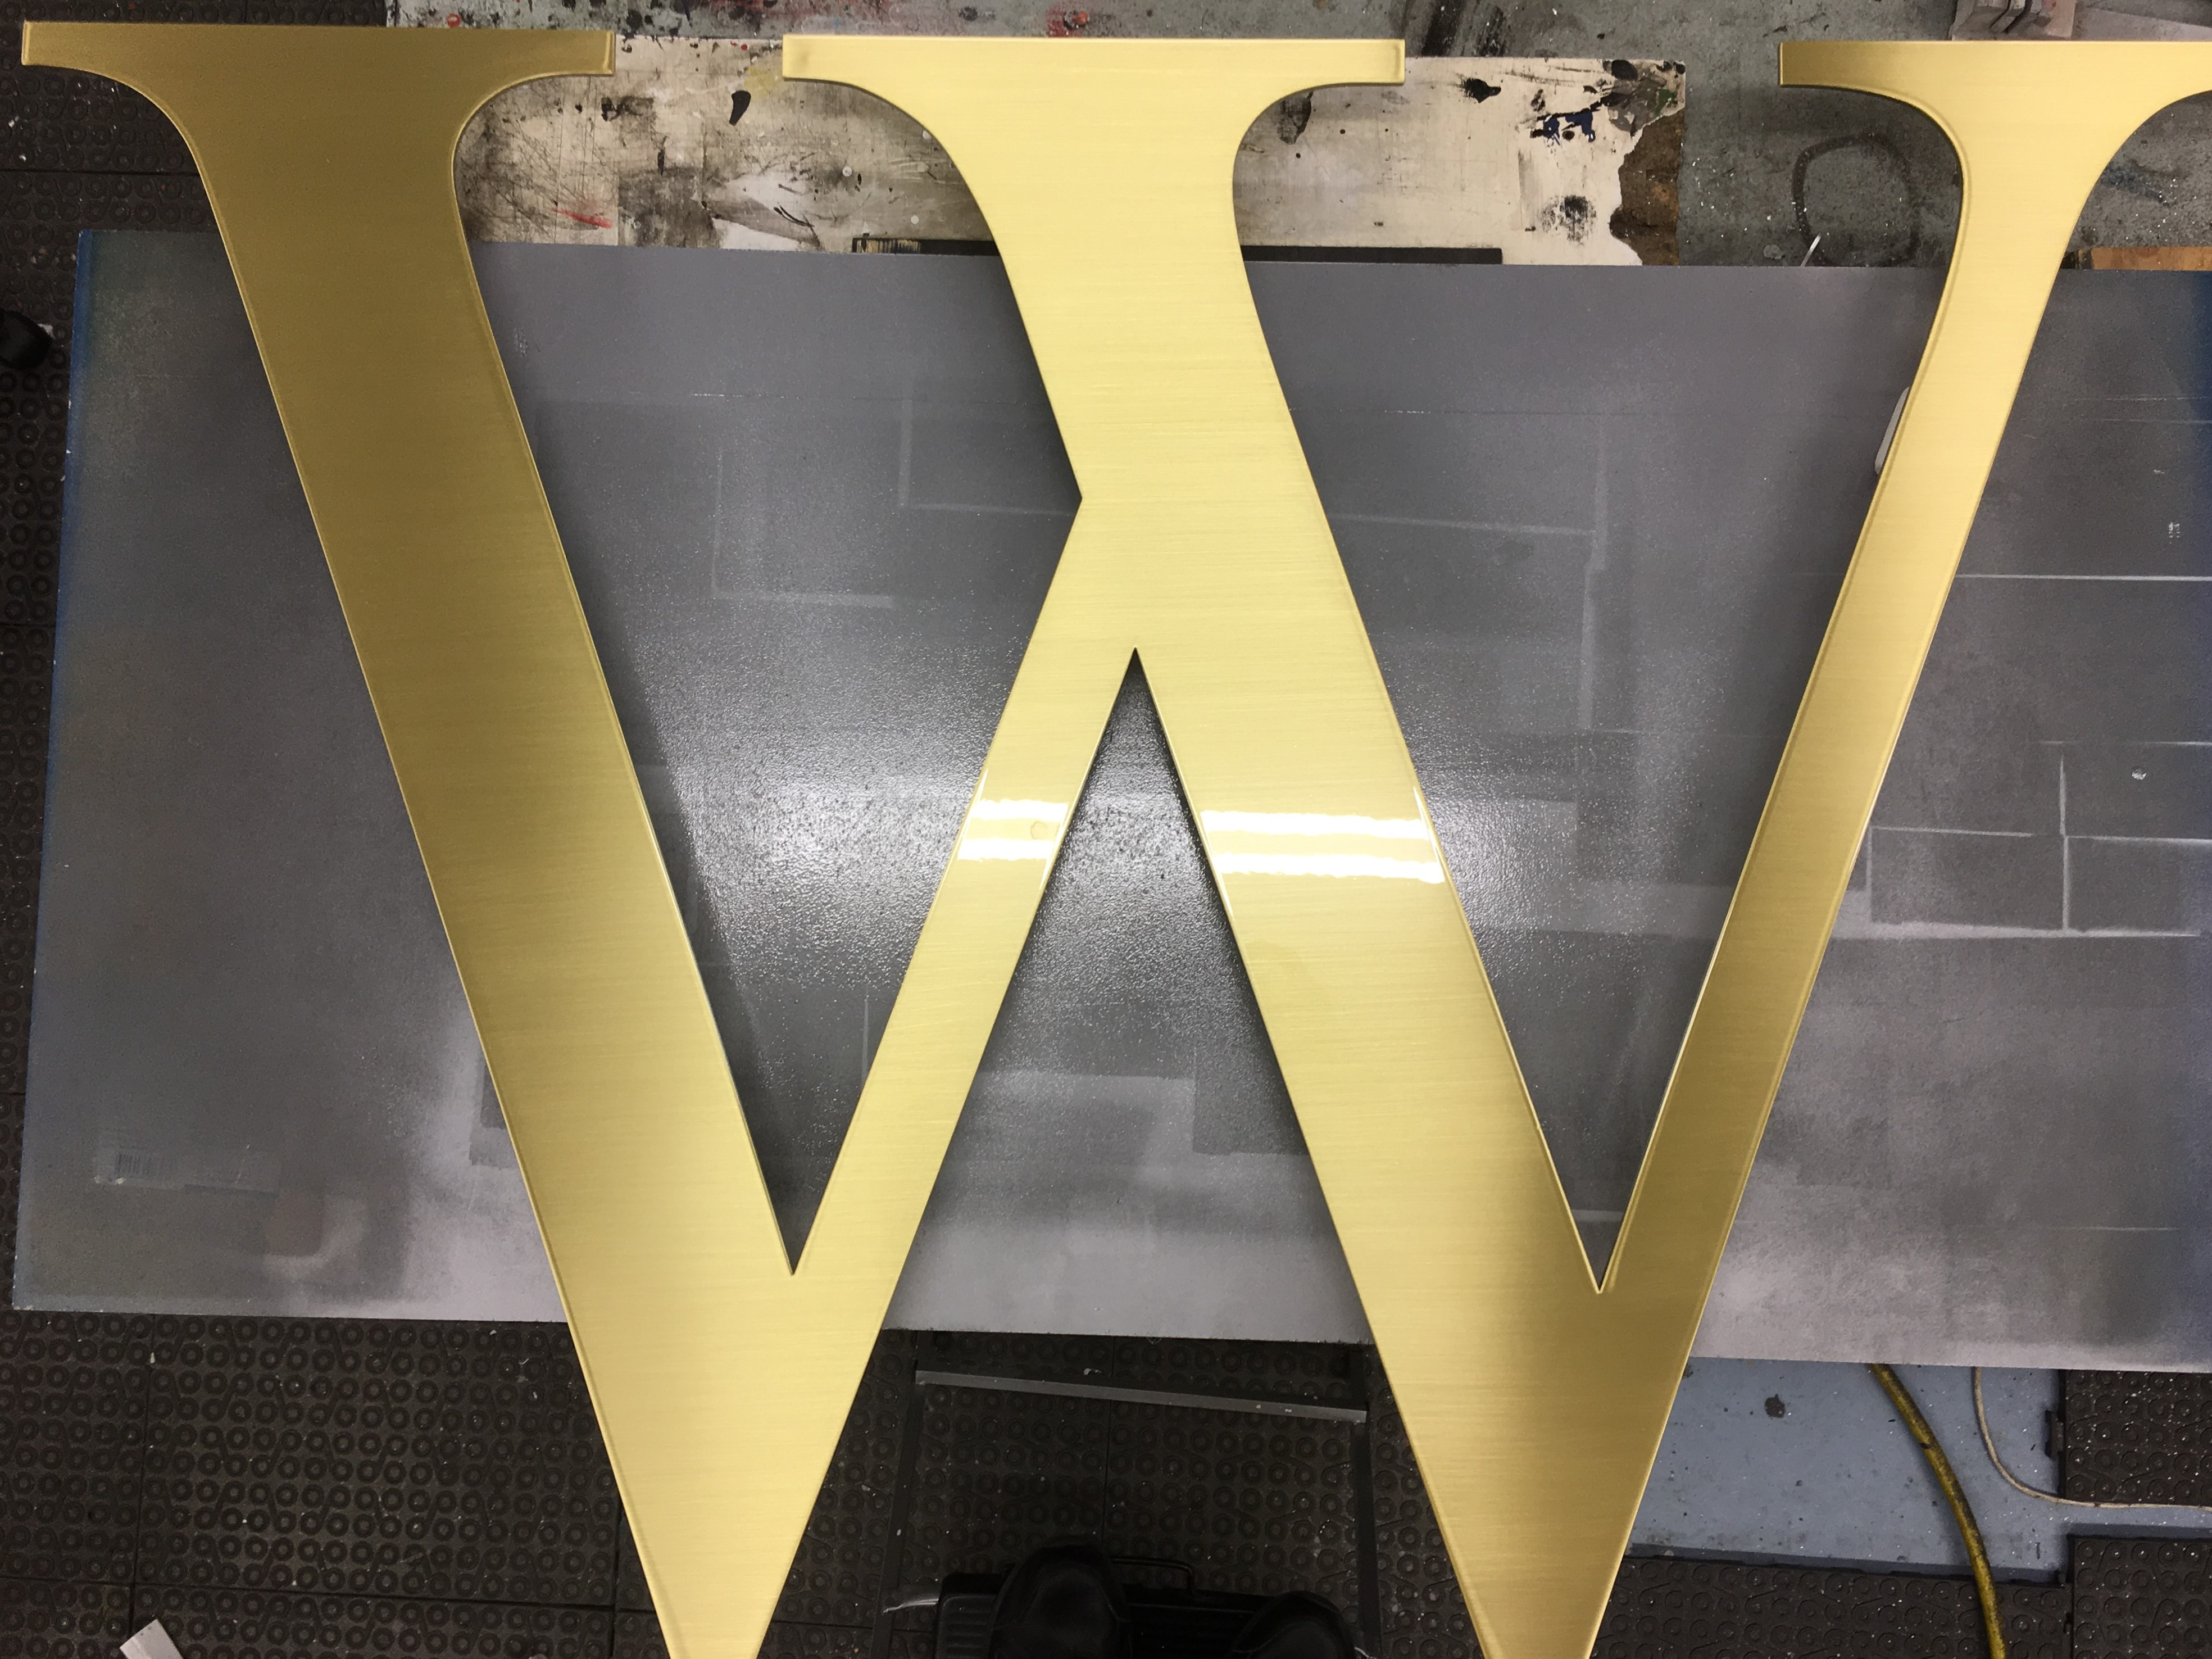 Warringah Mall Laser Cut Letters & Shapes NSW